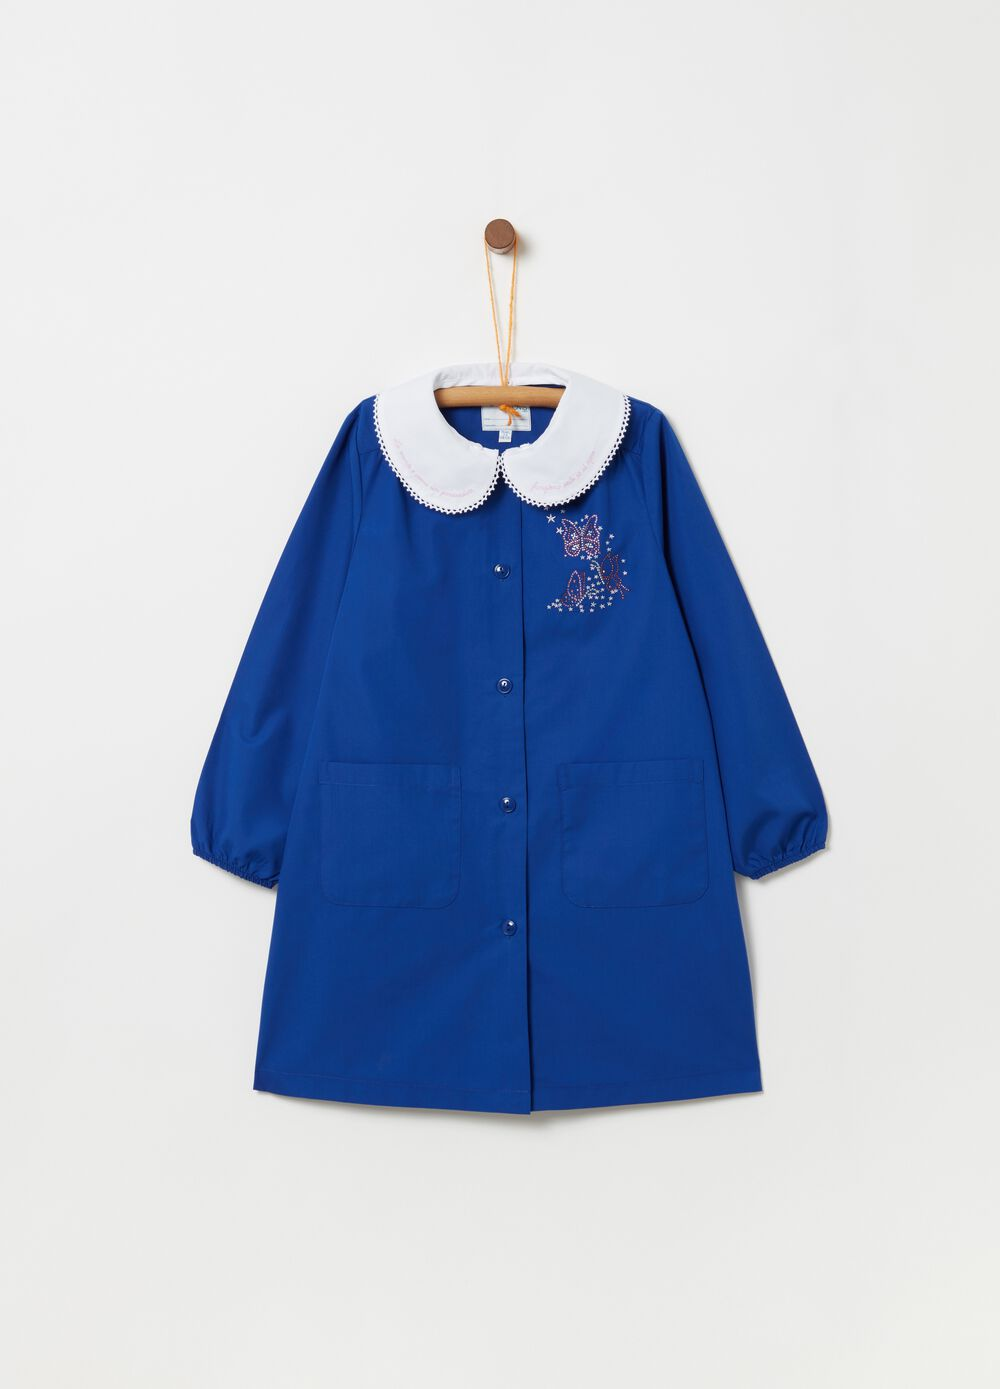 Embroidered school smock with applications